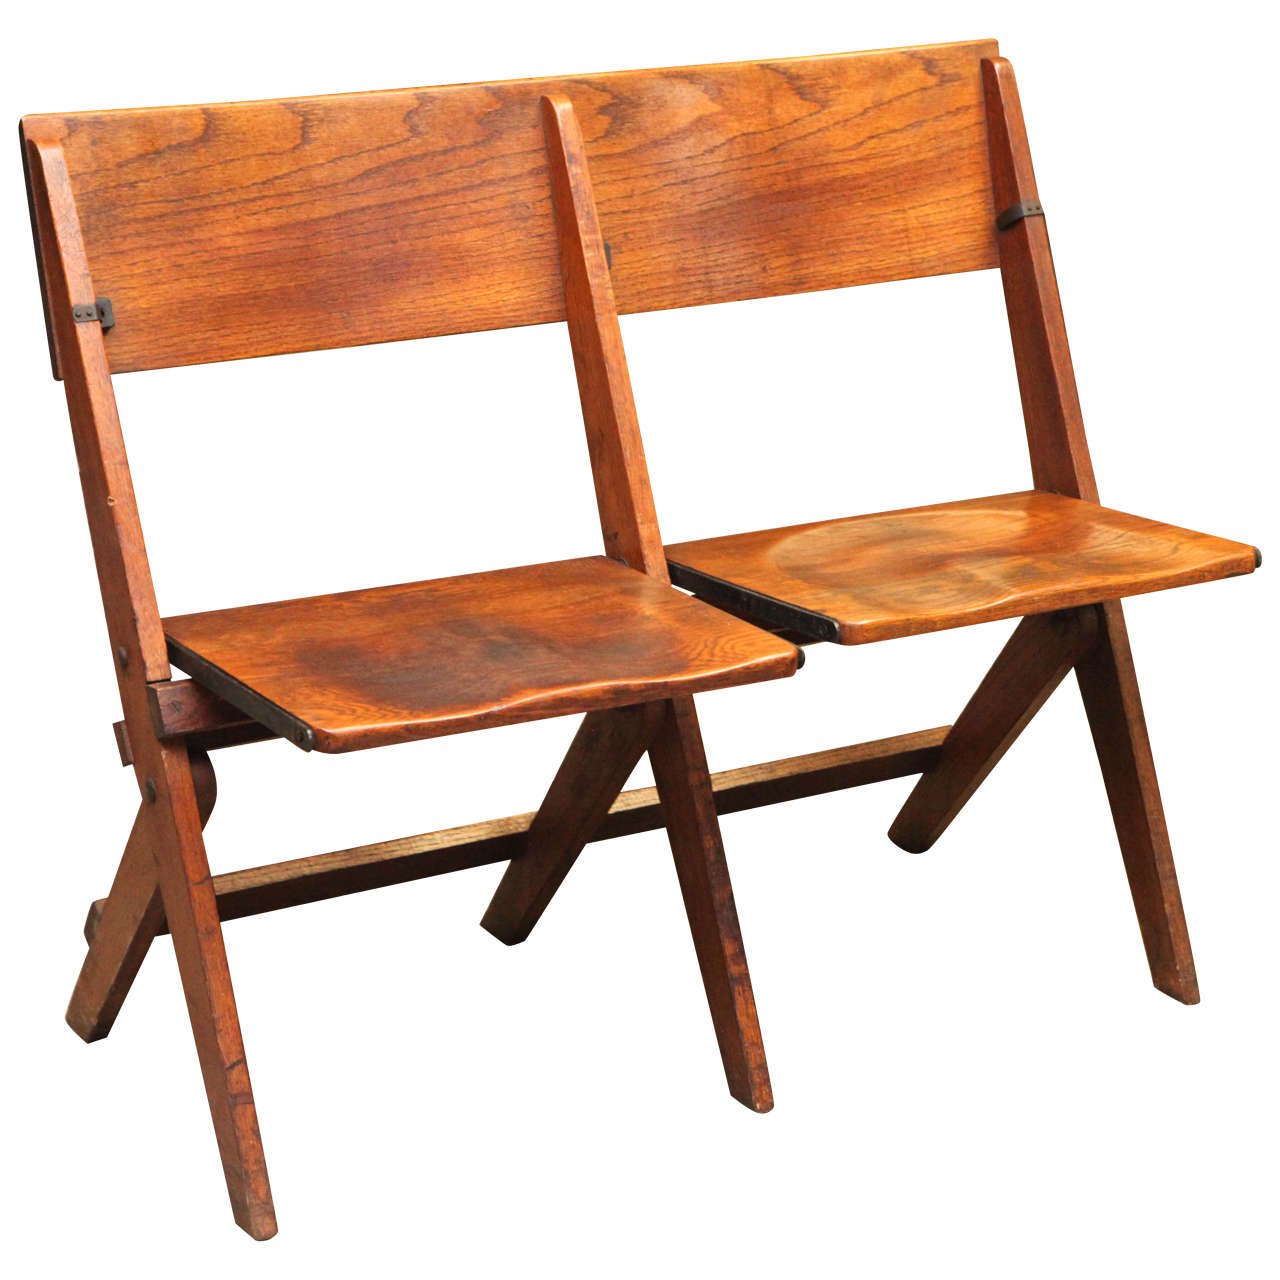 19th Century Double Folding Chair For Sale at 1stdibs